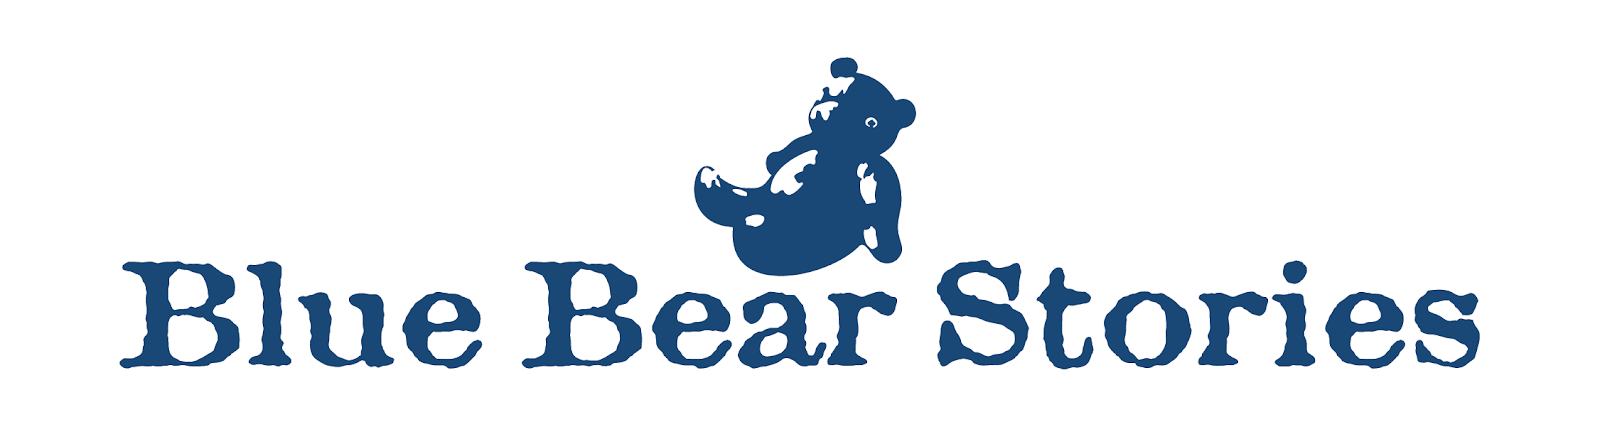 Blue Bear Stories